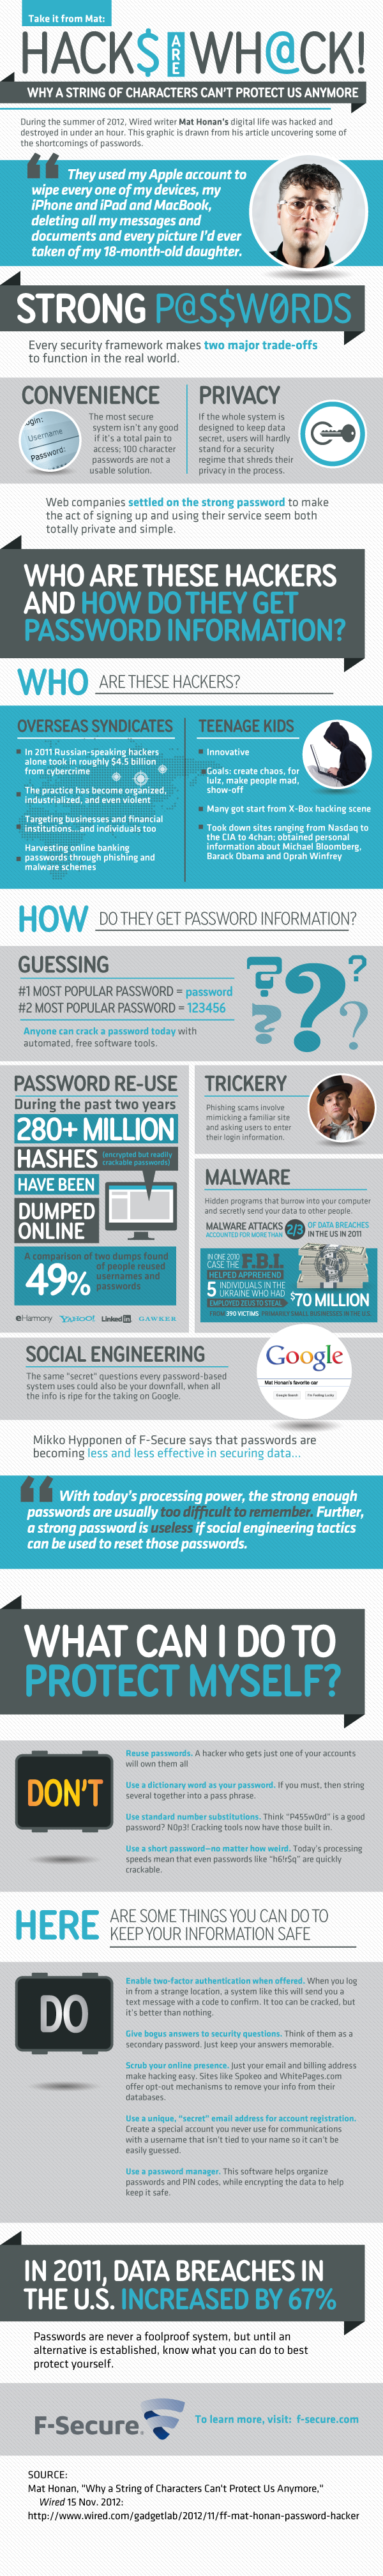 F-Secure Mat Honan Infographic